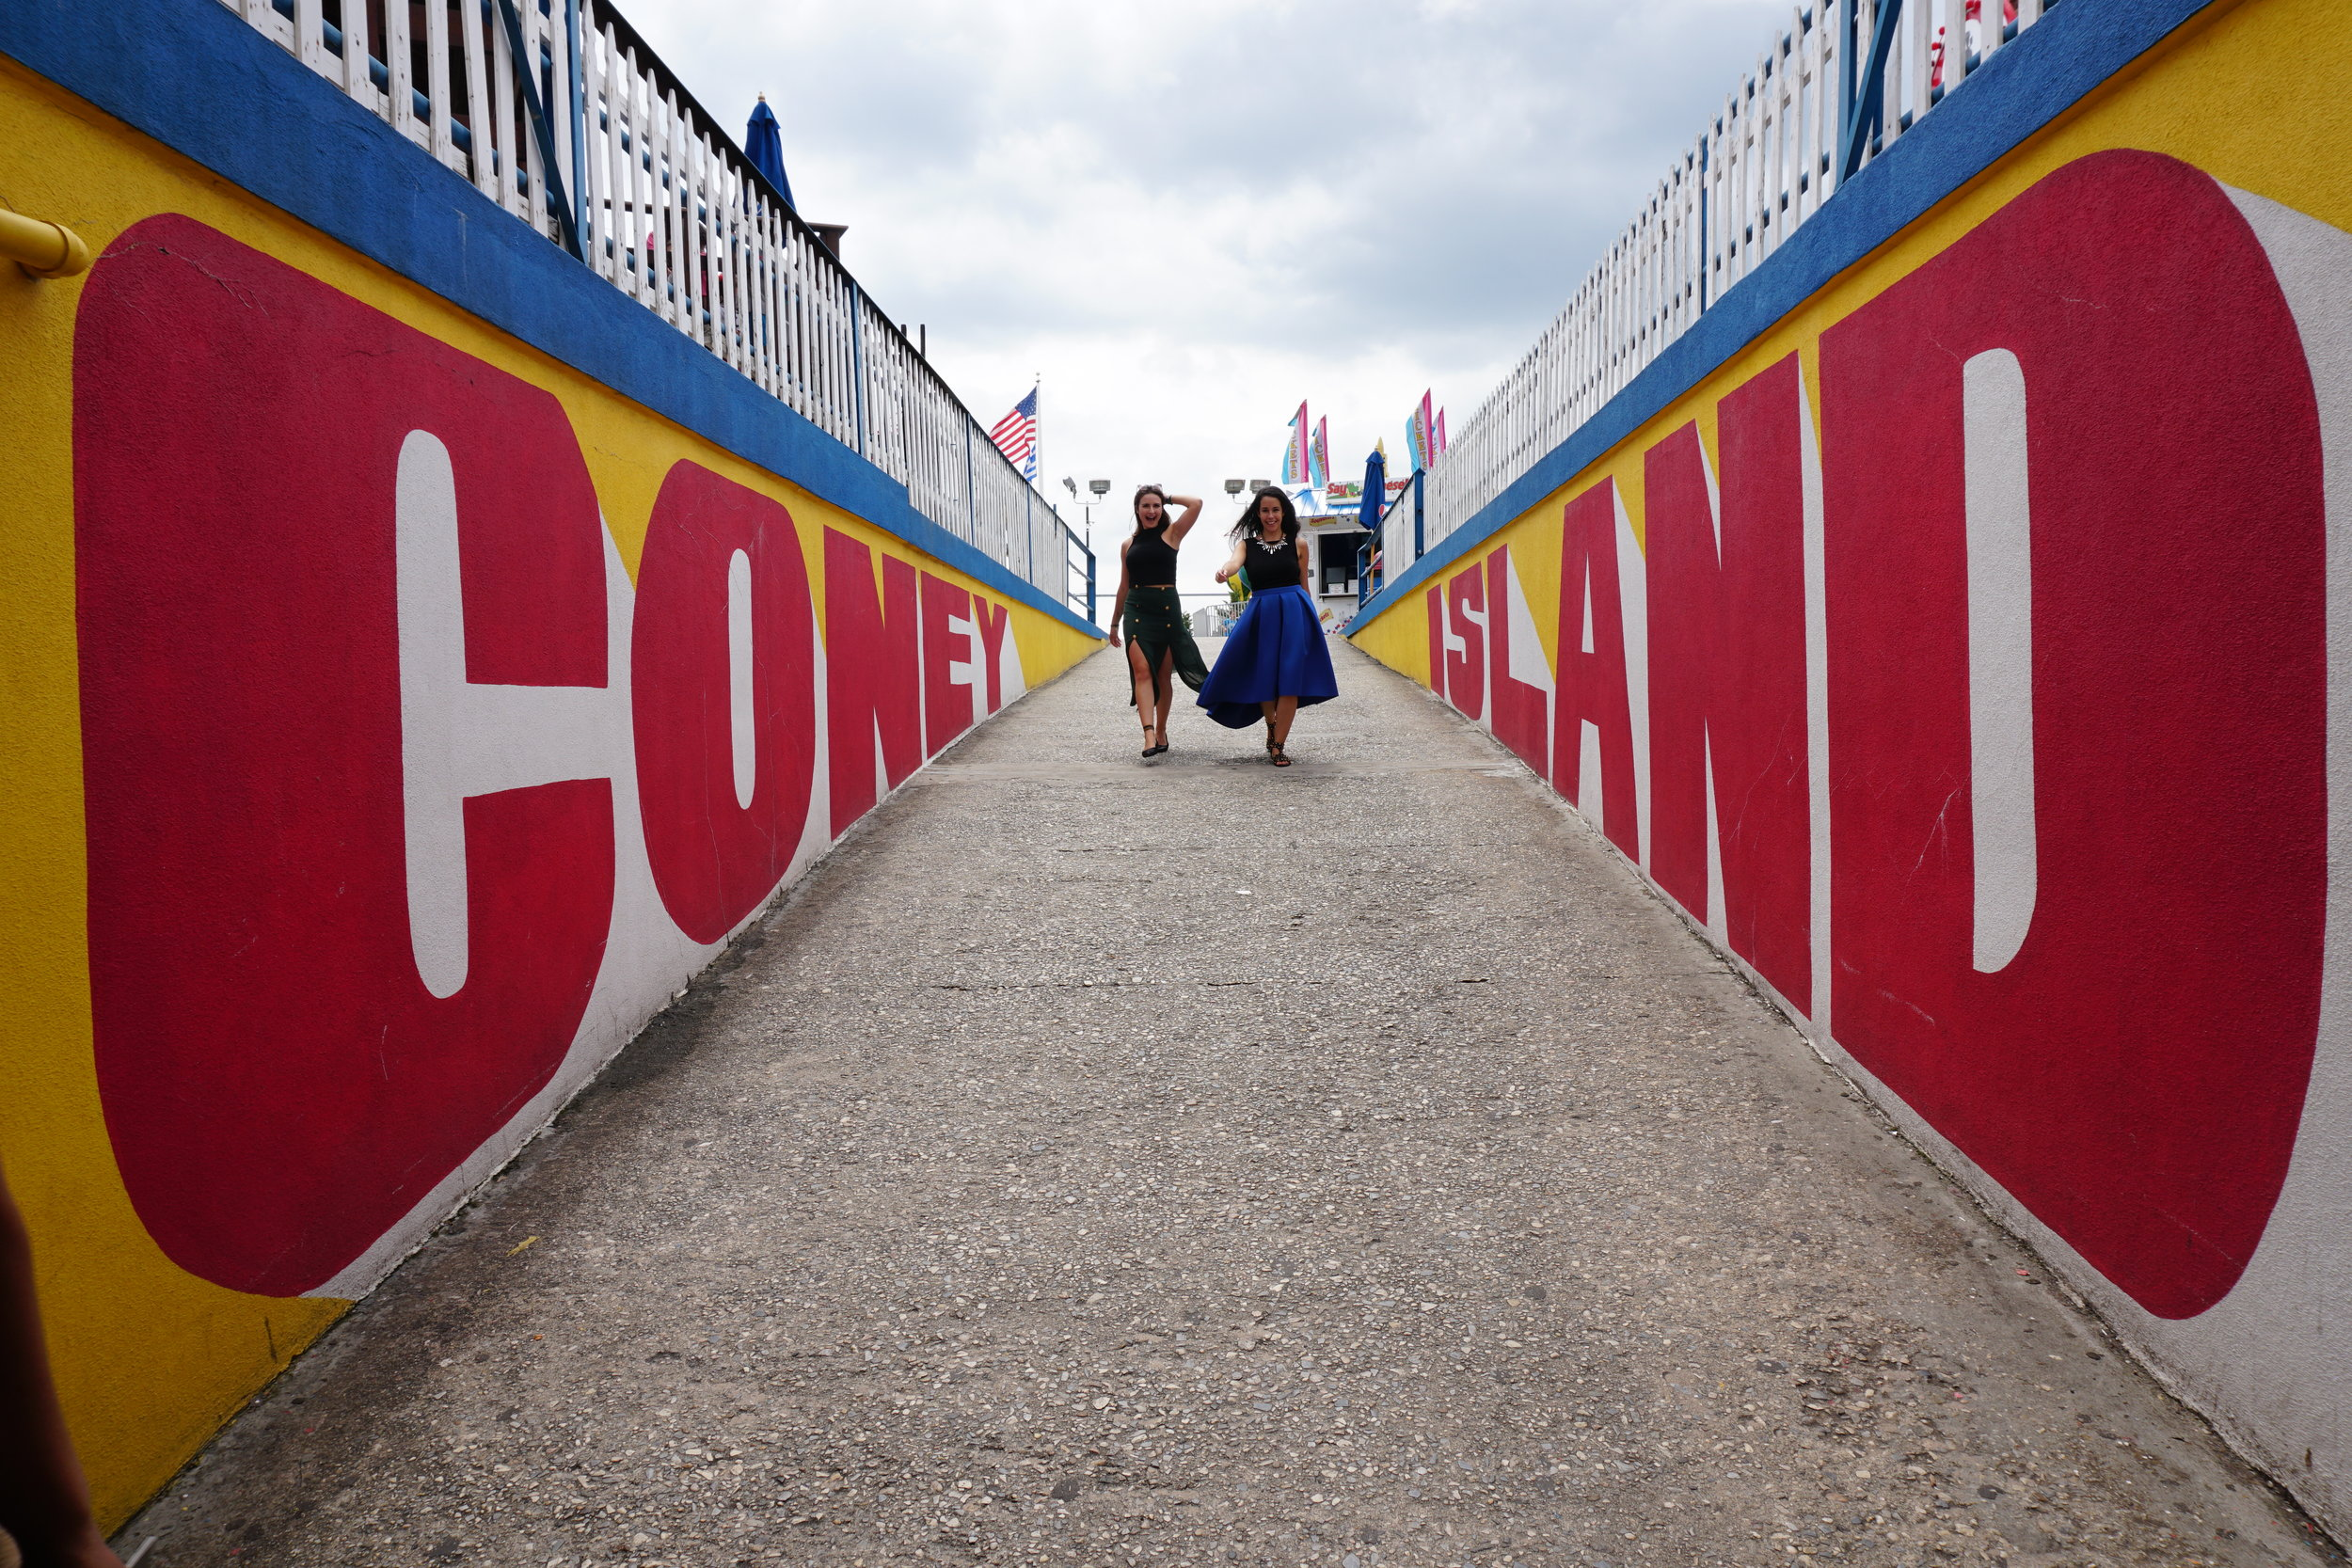 Coney Island Travel Guide